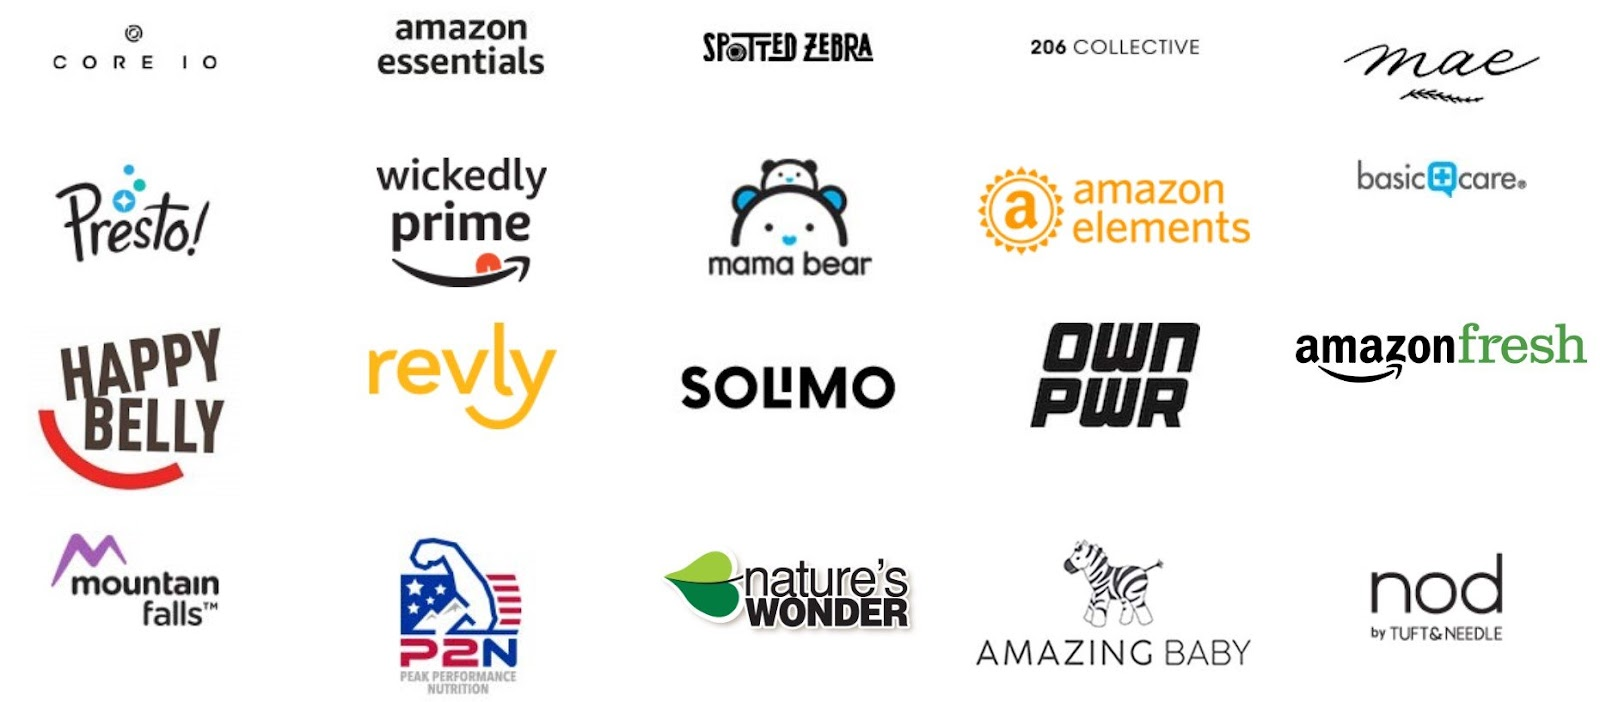 An overview of Amazon's private label brands